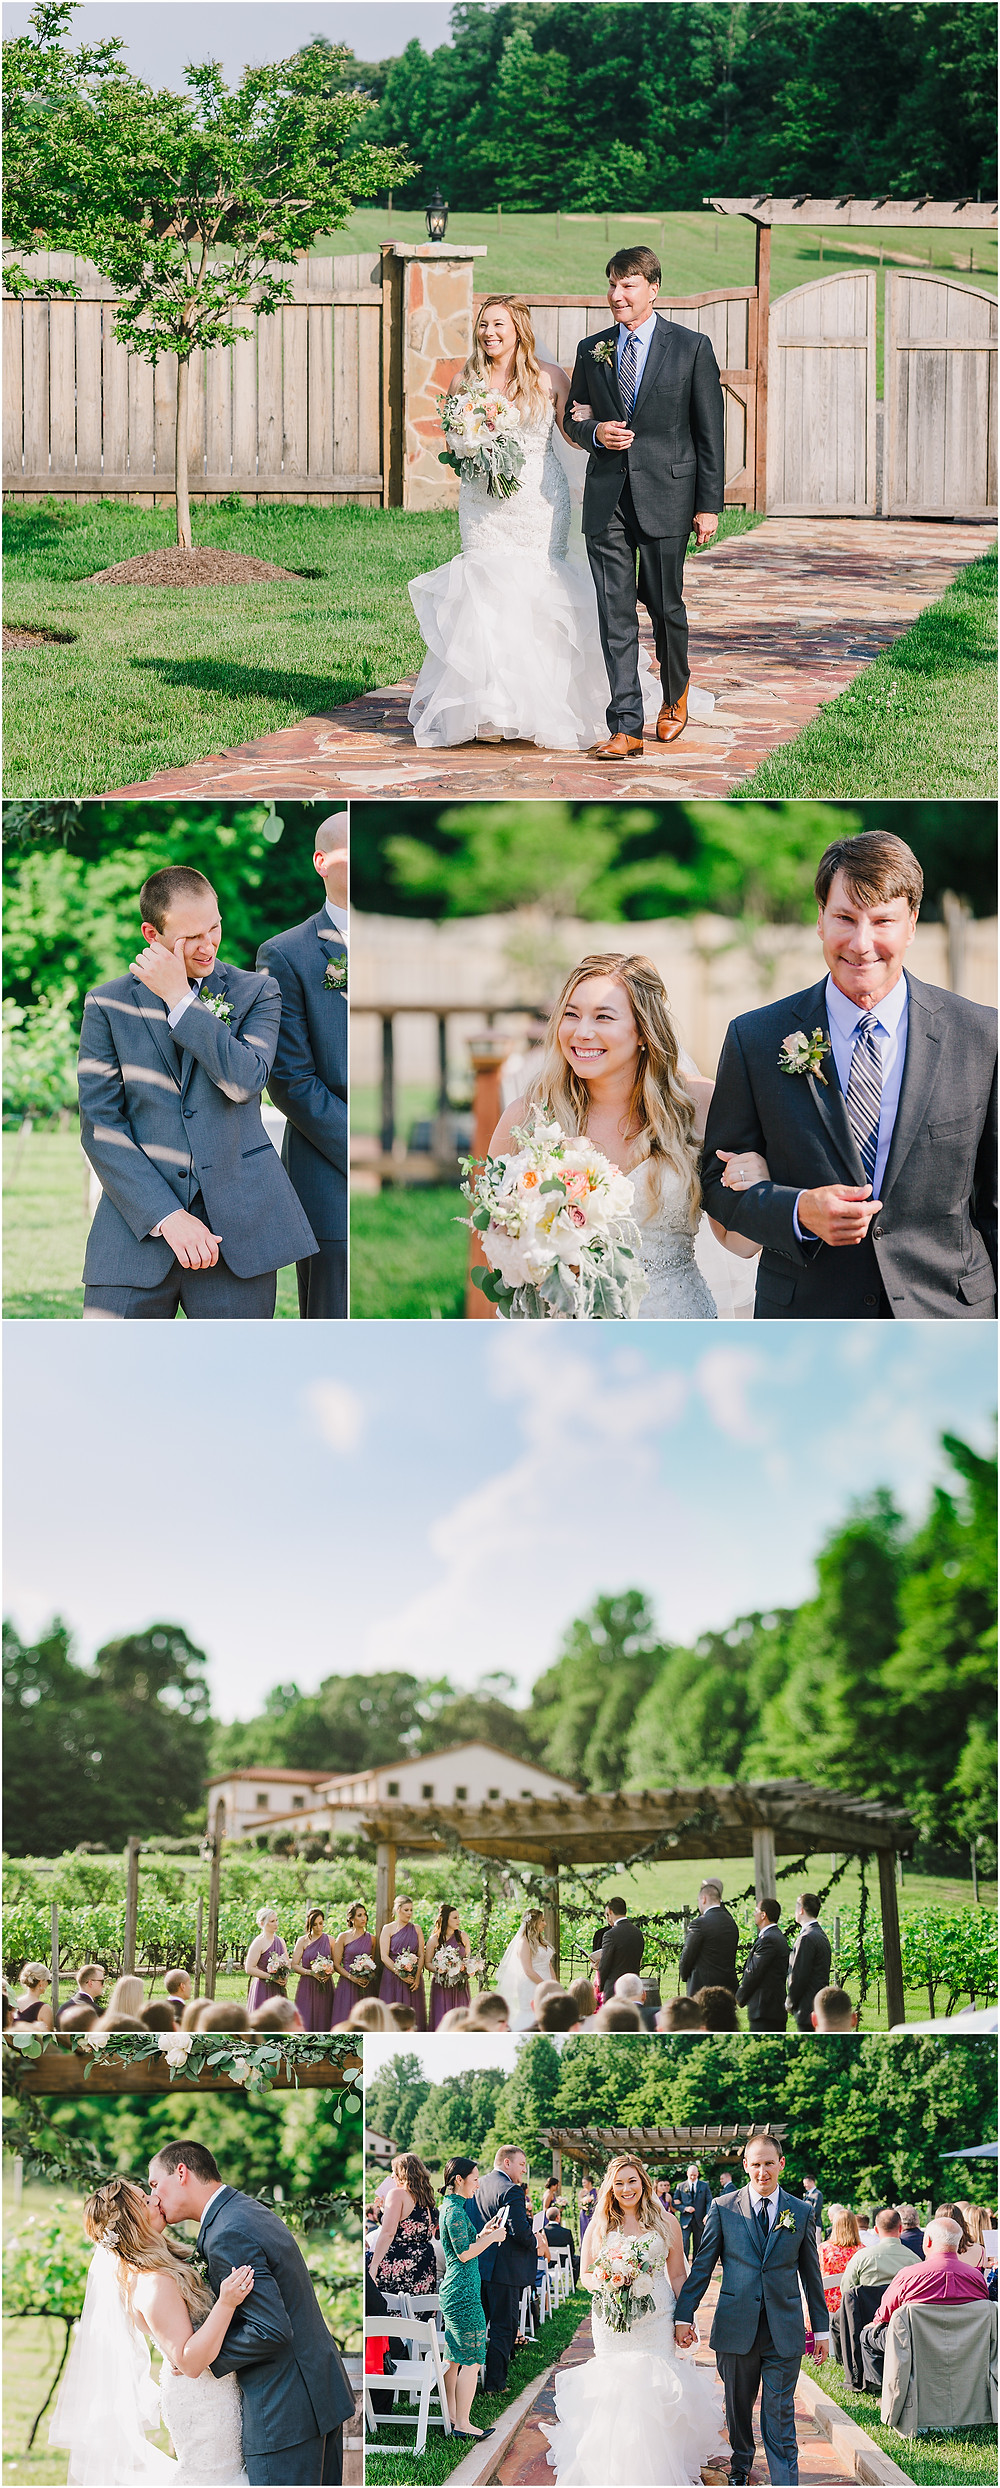 June Wedding Ceremony at Running Hare Vineyard - Maryland Wedding Photography